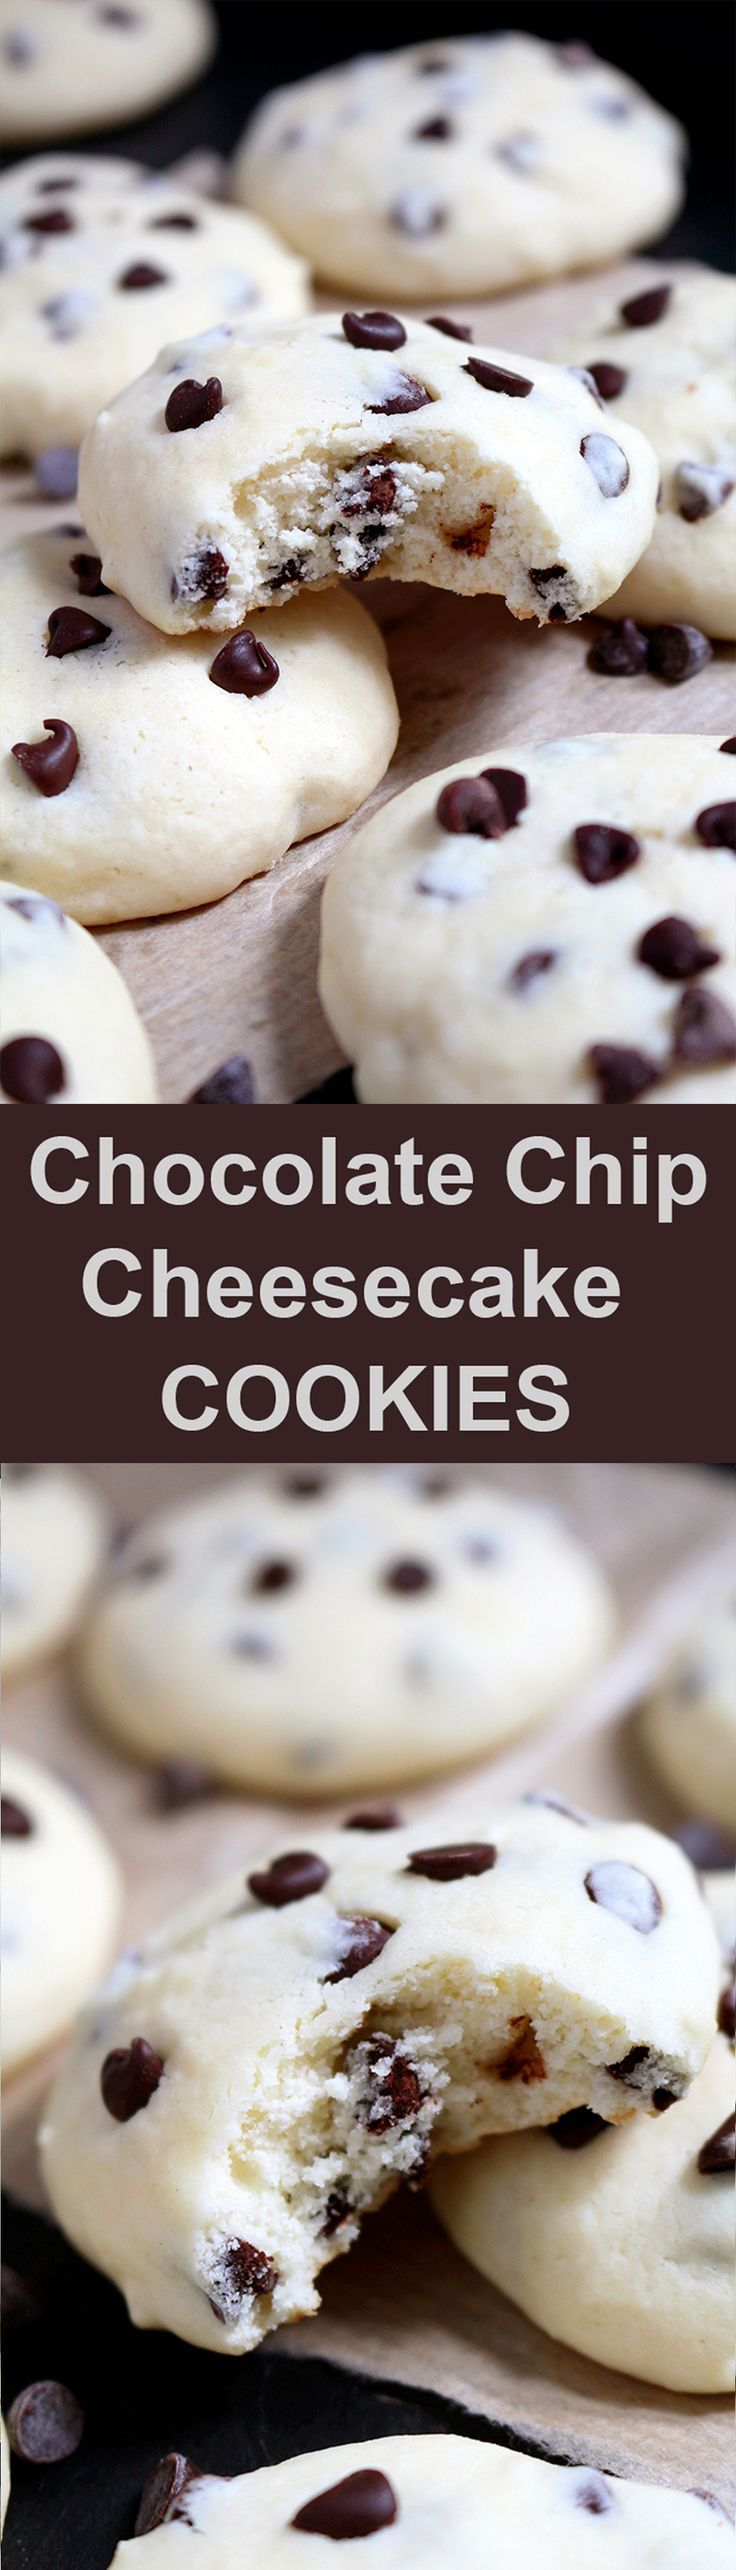 These cookies with cream cheese and chocolate chips simply melt in your mouth. Chocolate Chip Cheesecake Cookies are simple, light and delicious �